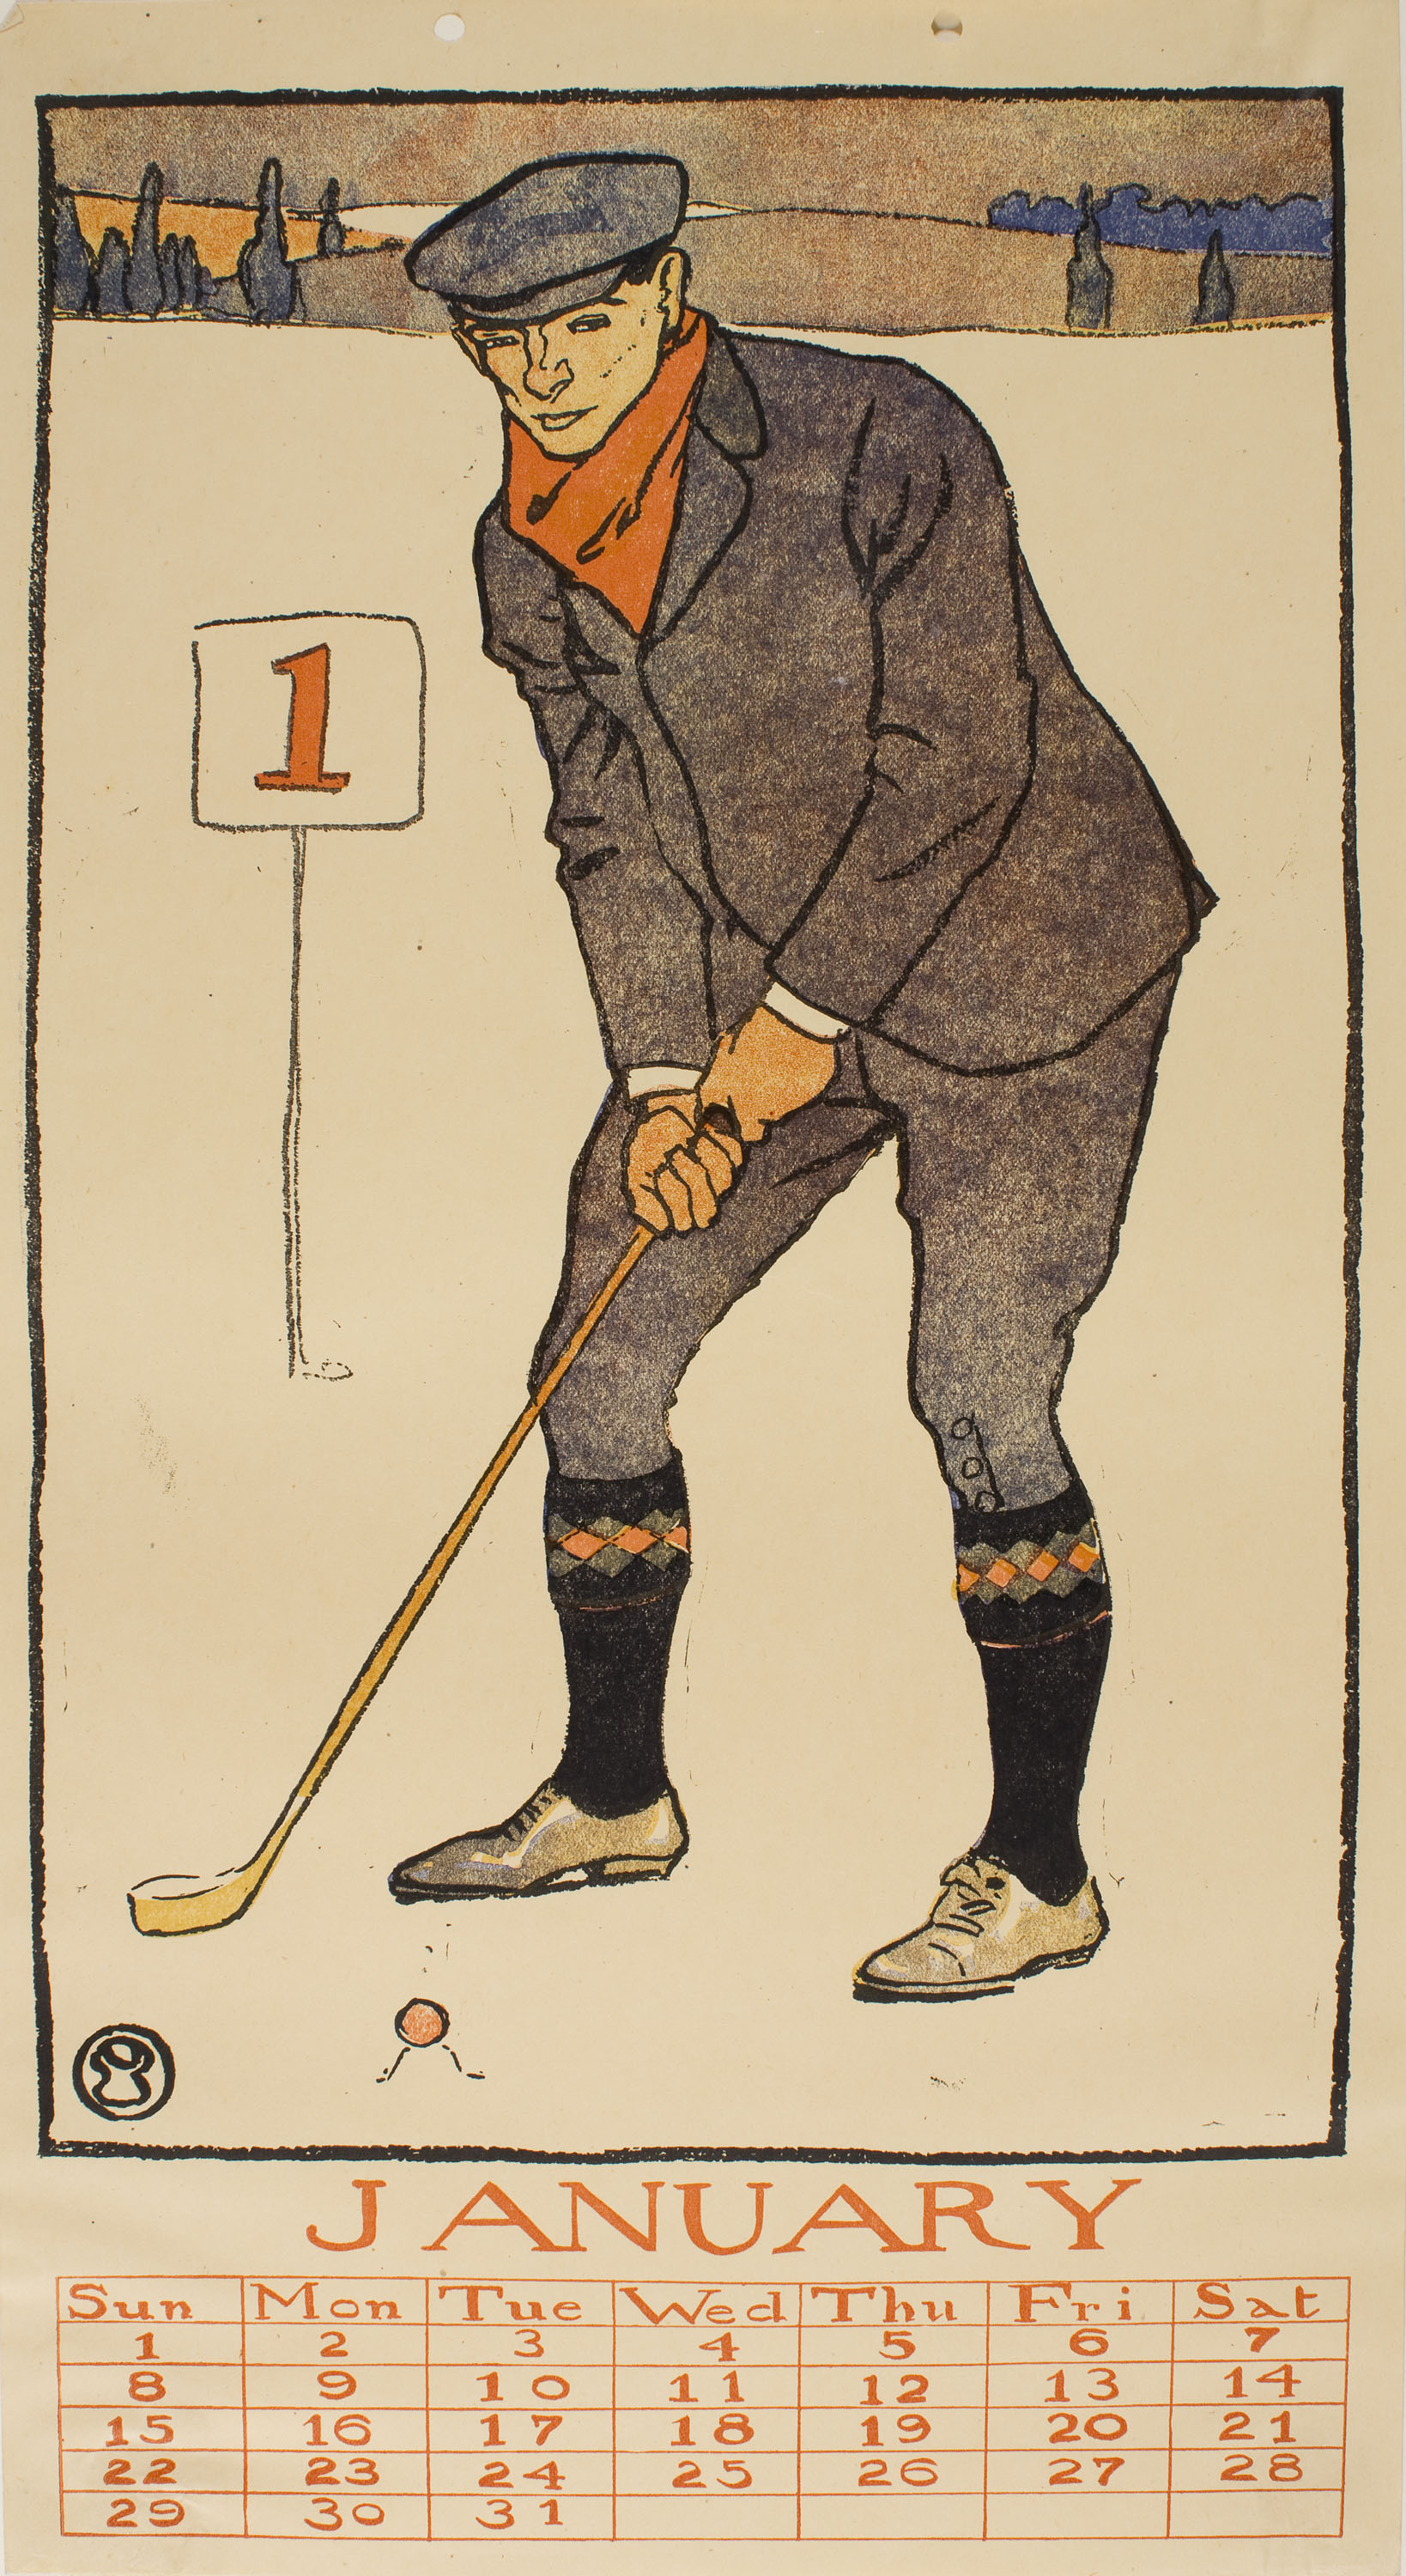 Edward Penfield - January (Golf Calendar) - 1899